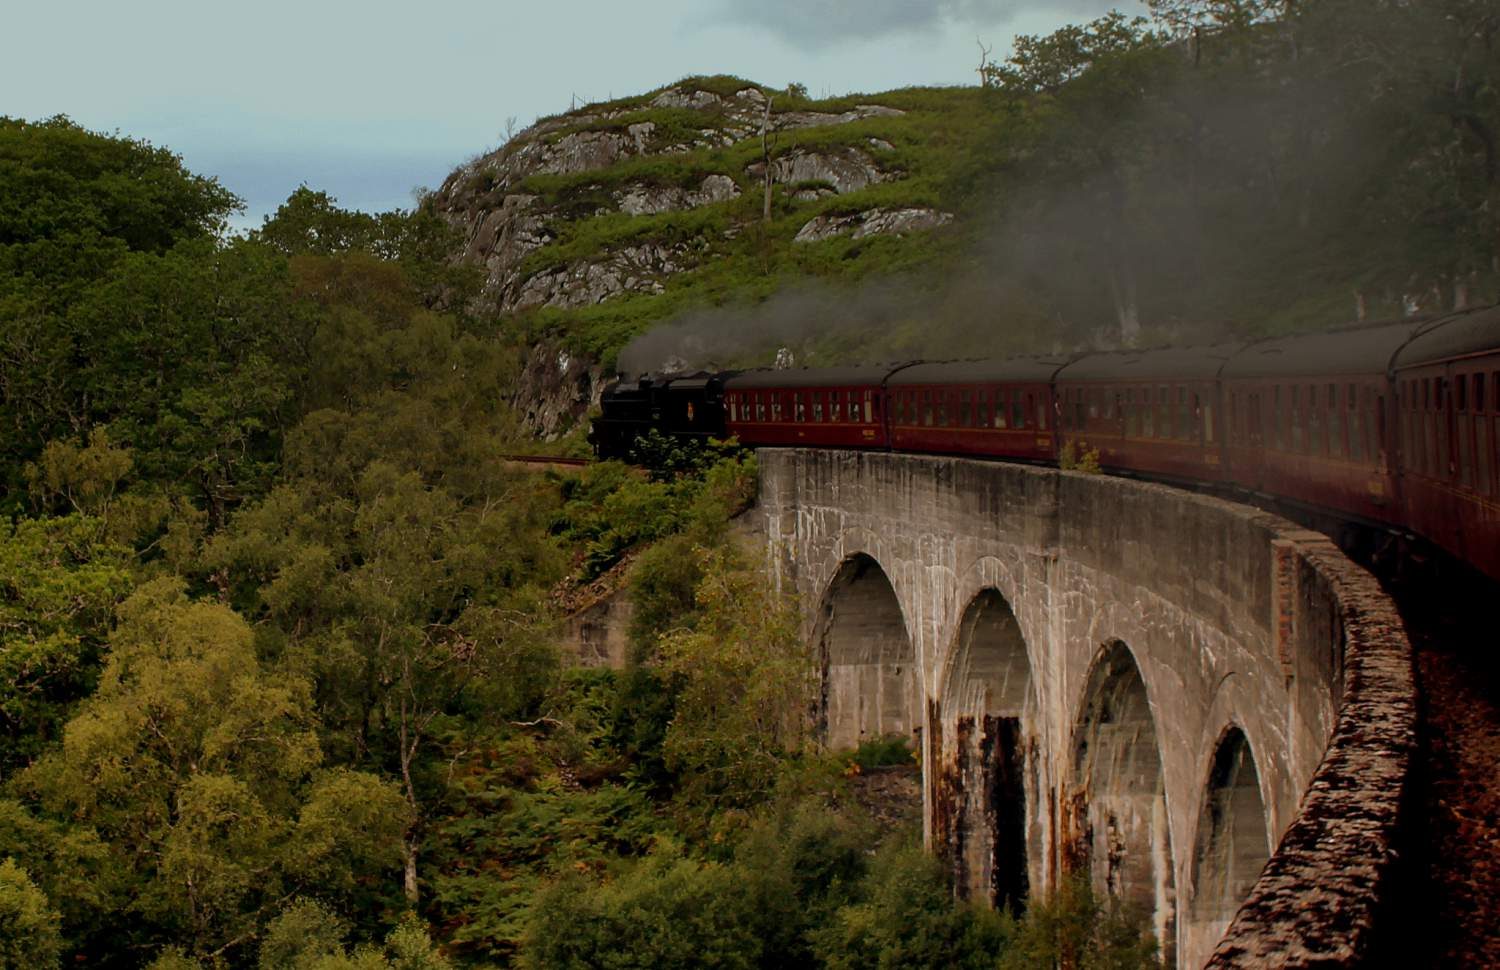 The Jacobit Train from the Harry Potter movies in Scotland